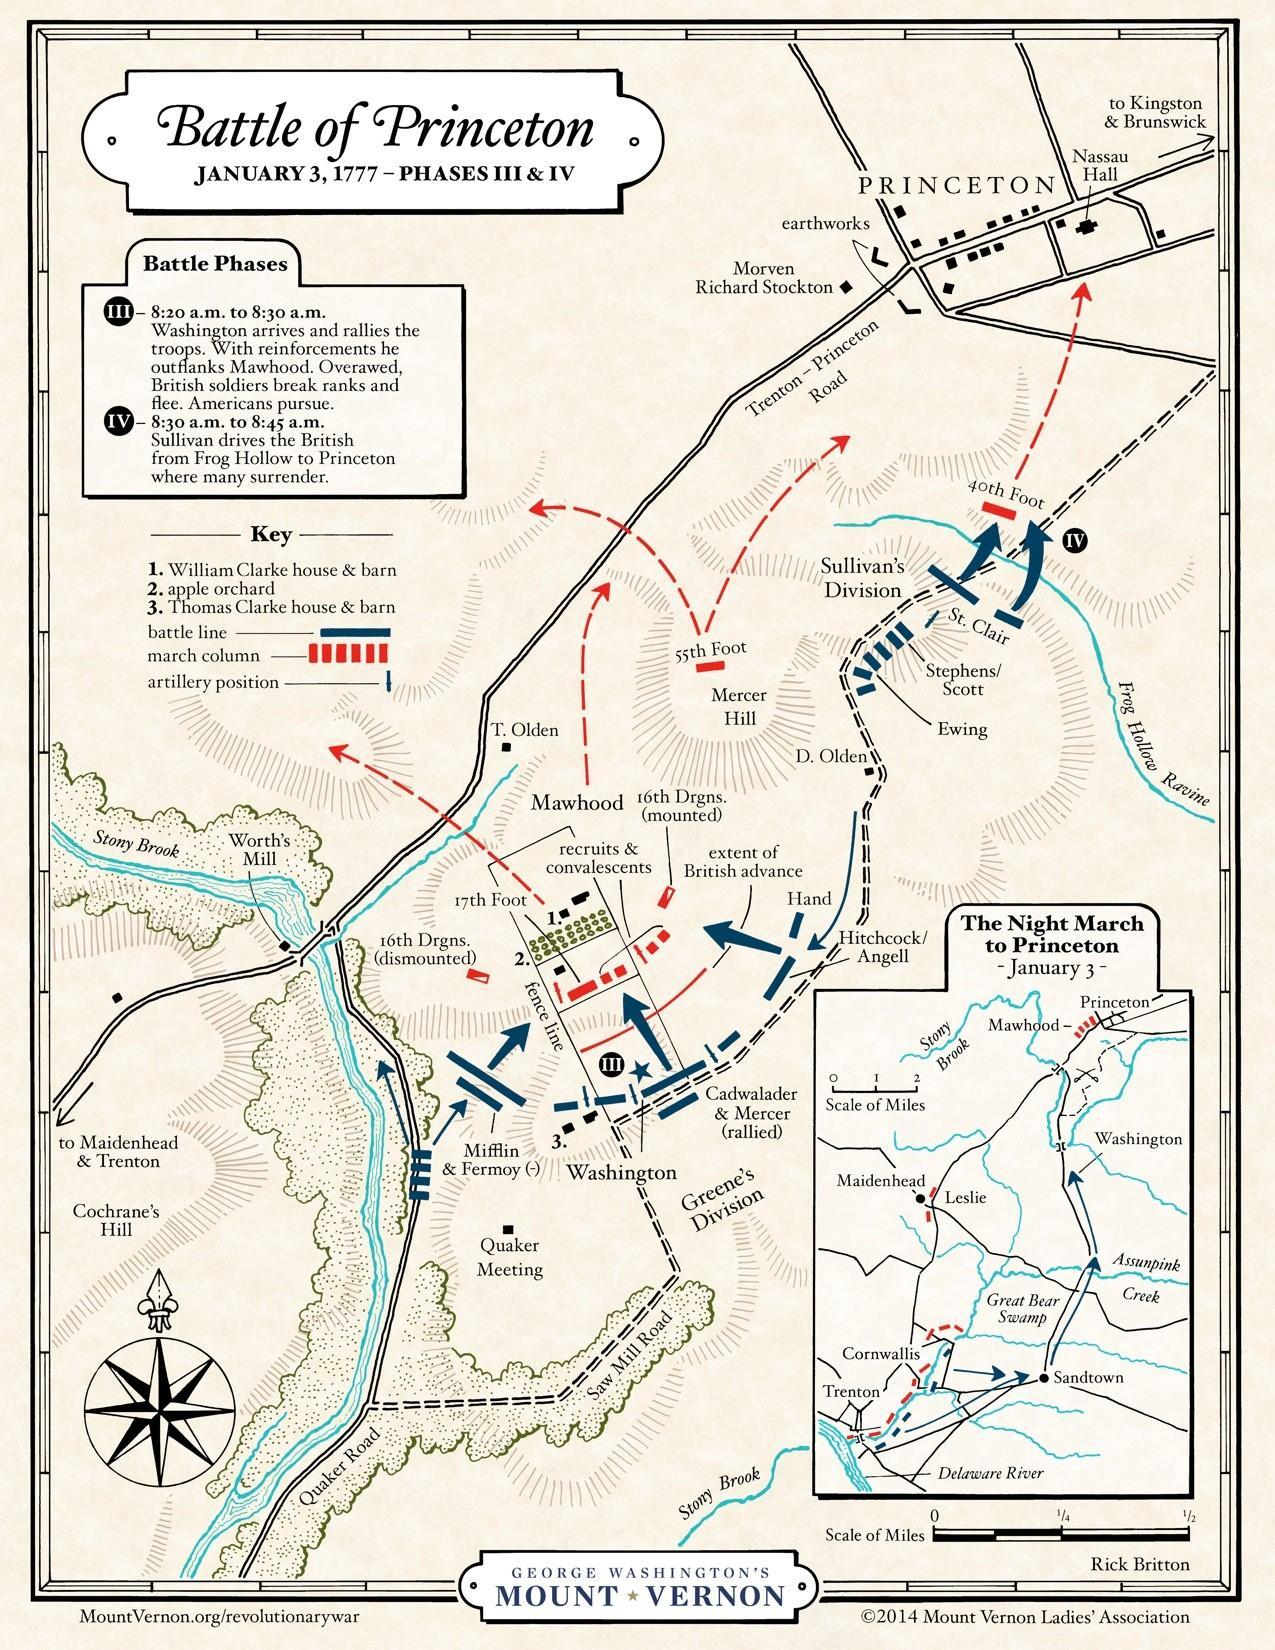 Map: Battle of Princeton, Phases III and IV